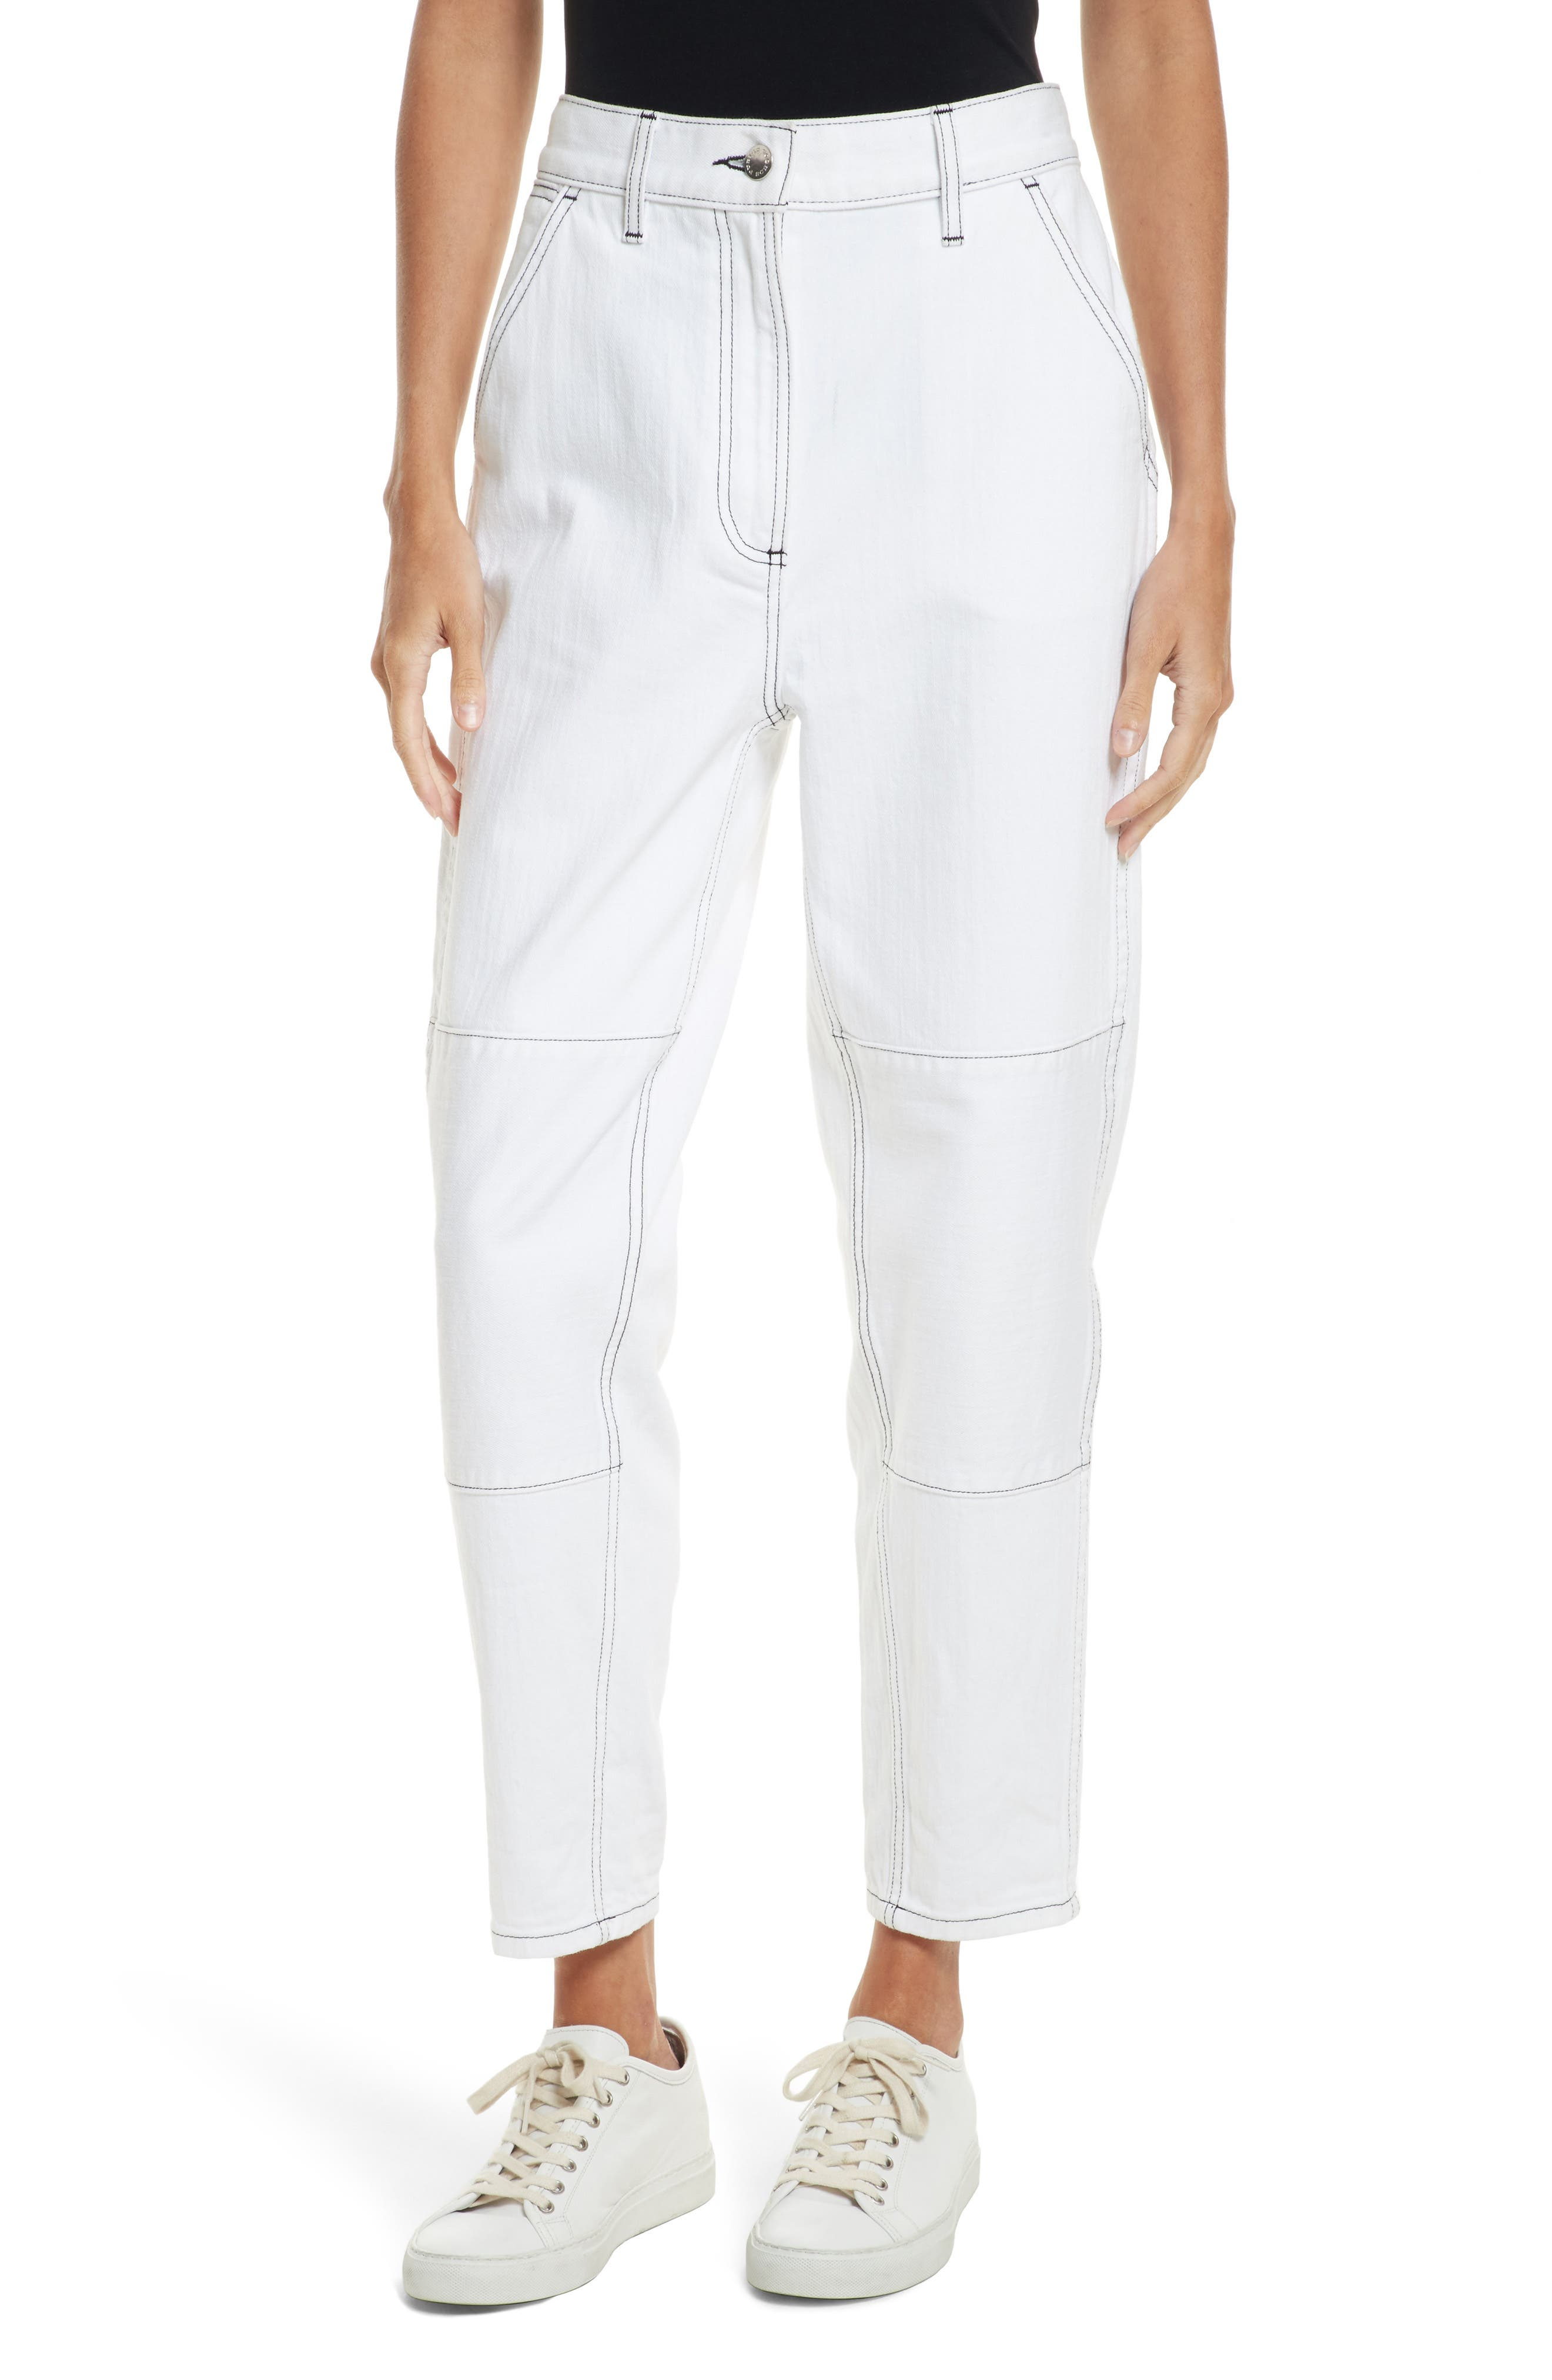 Pamela Ankle Jeans,                         Main,                         color, White